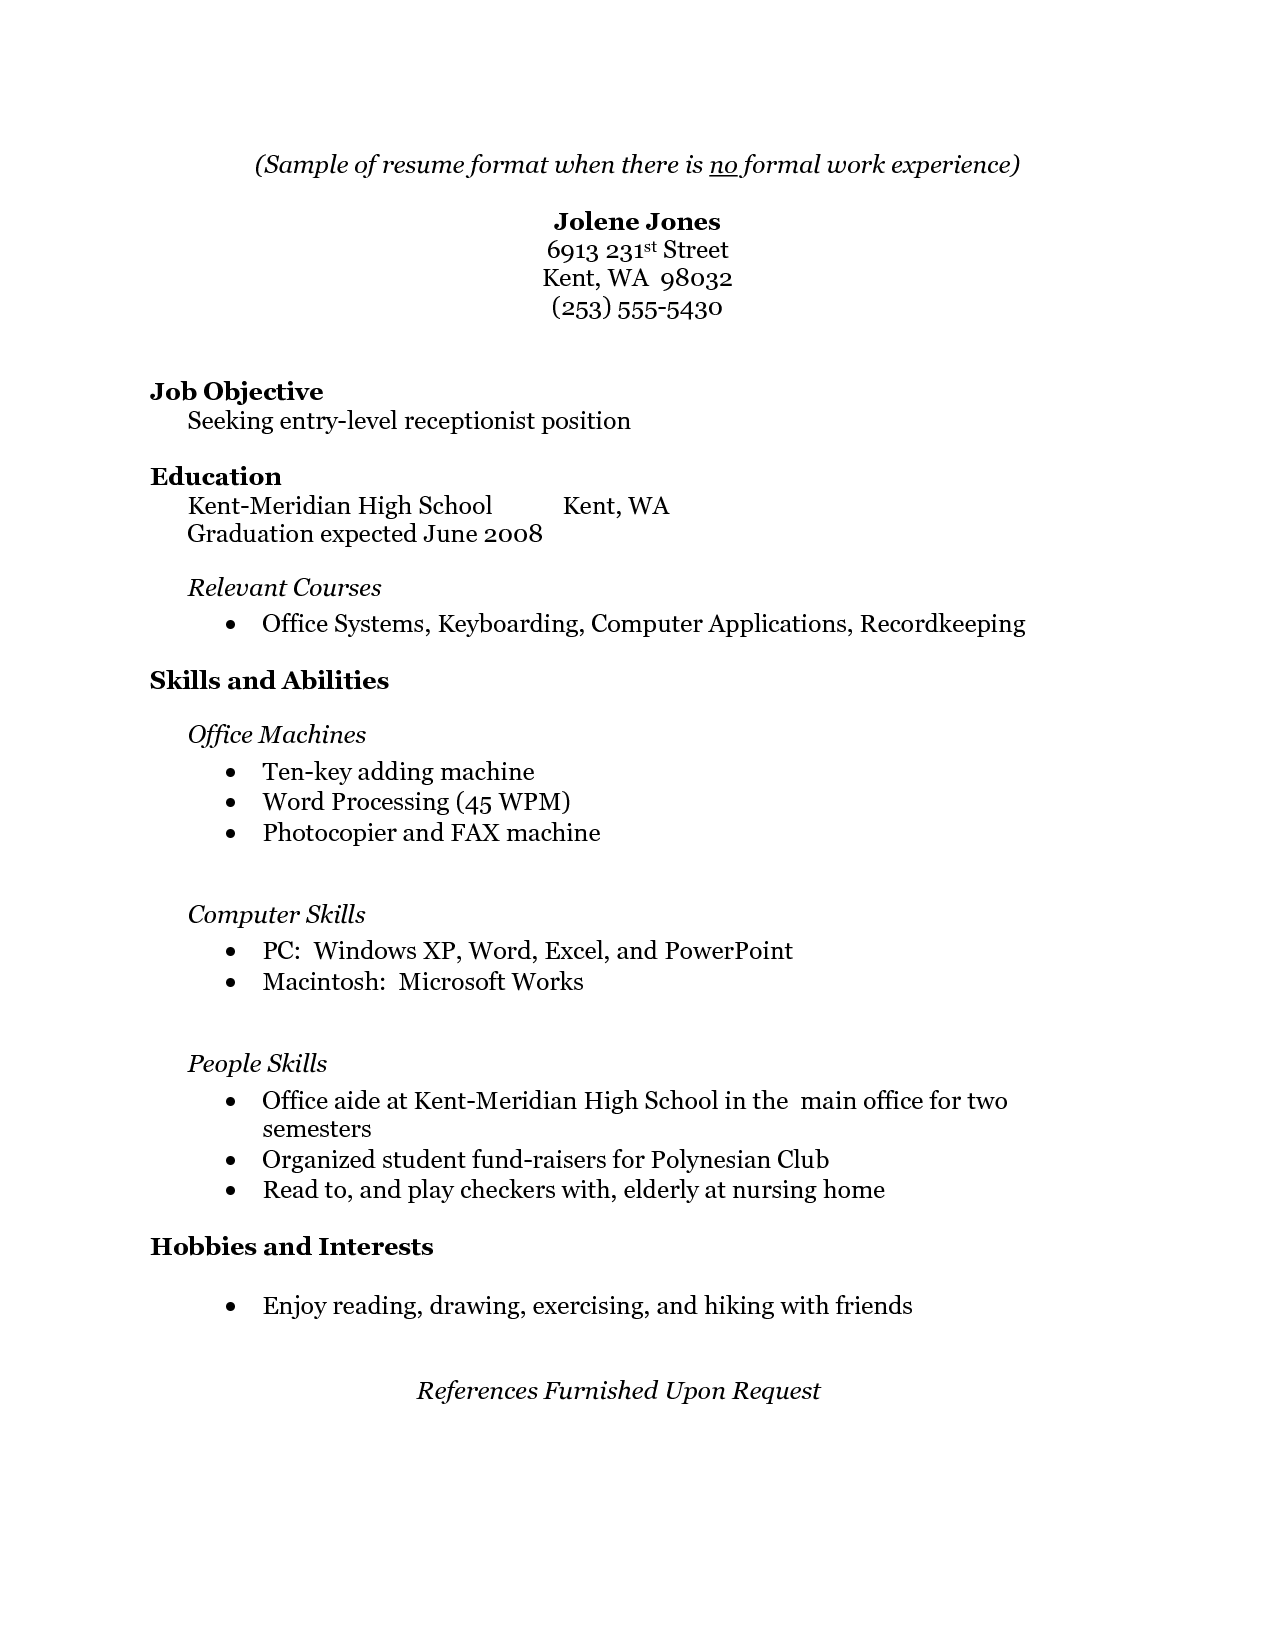 Resume For High School Student With No Work Experience Job Resume No Experience Examples  Httpwwwresumecareer